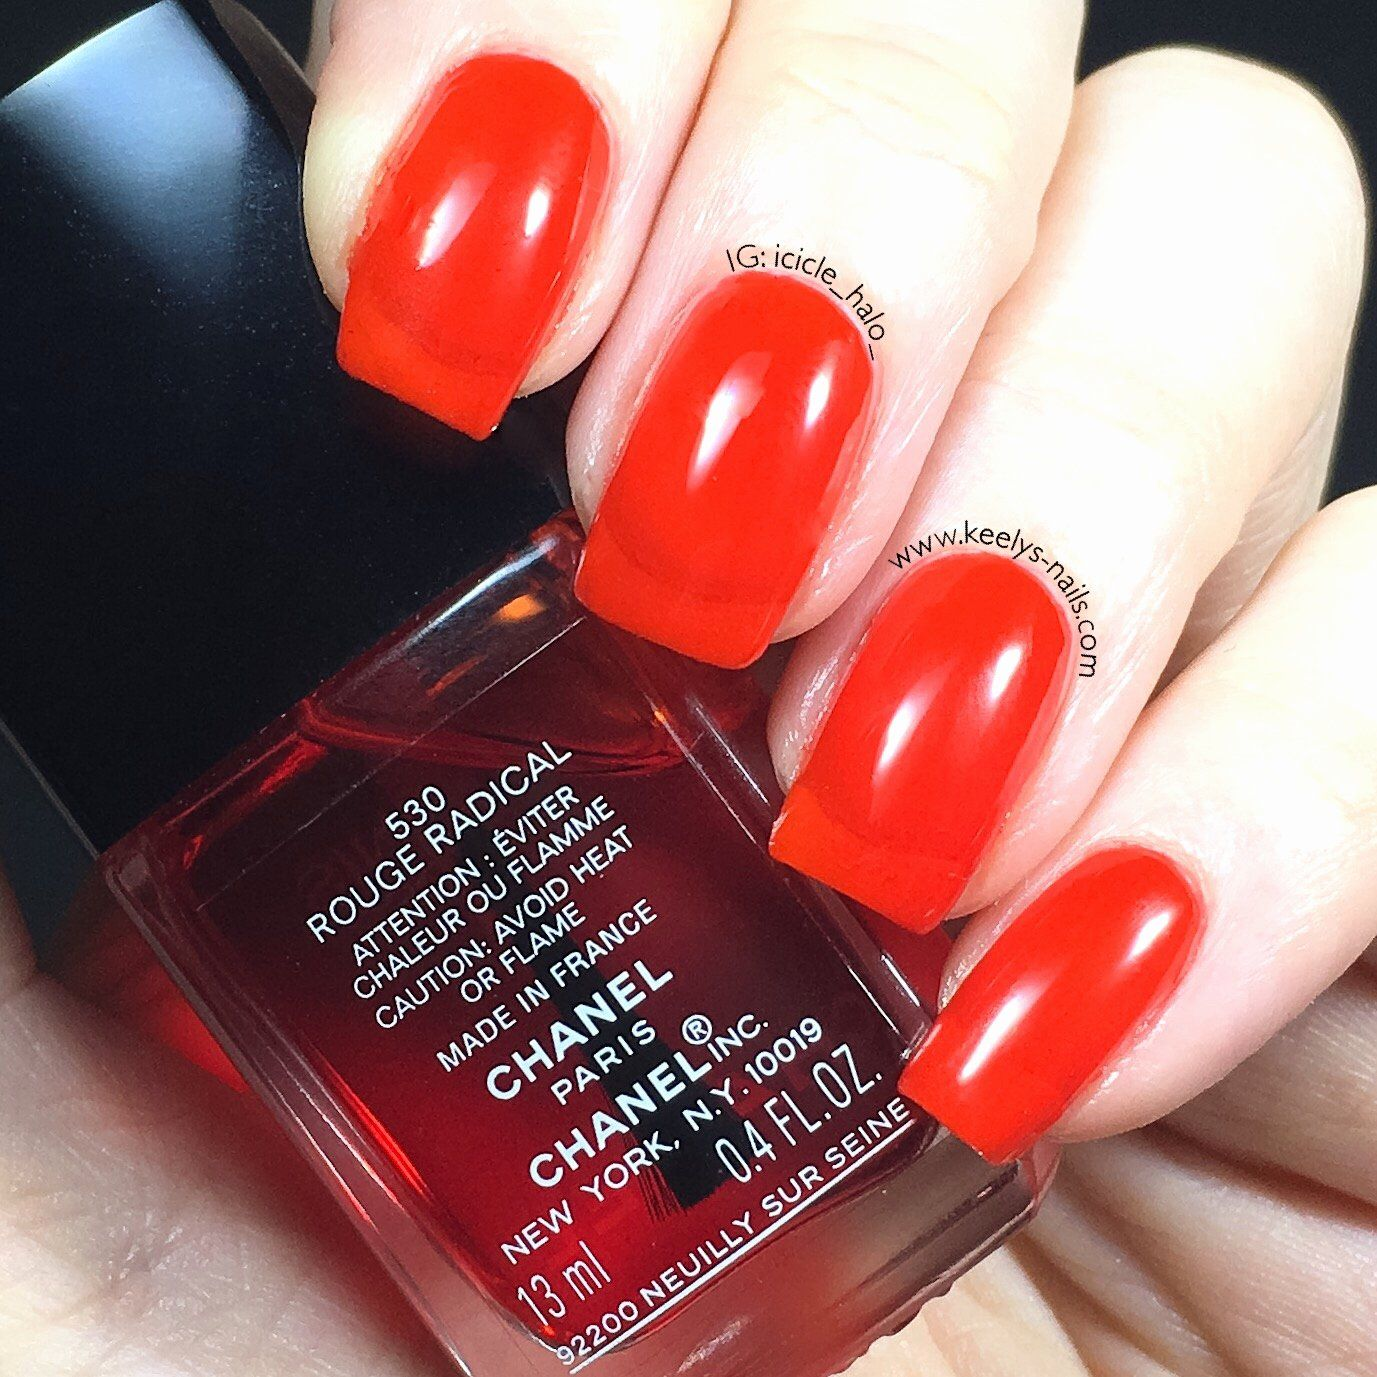 Winter Nail Color 2016 New Chanel Nail Polish Fall 2016 Swatches Keely S Nails In 2020 Winter Nails Colors 2016 Nail Colors Winter Chanel Nail Polish